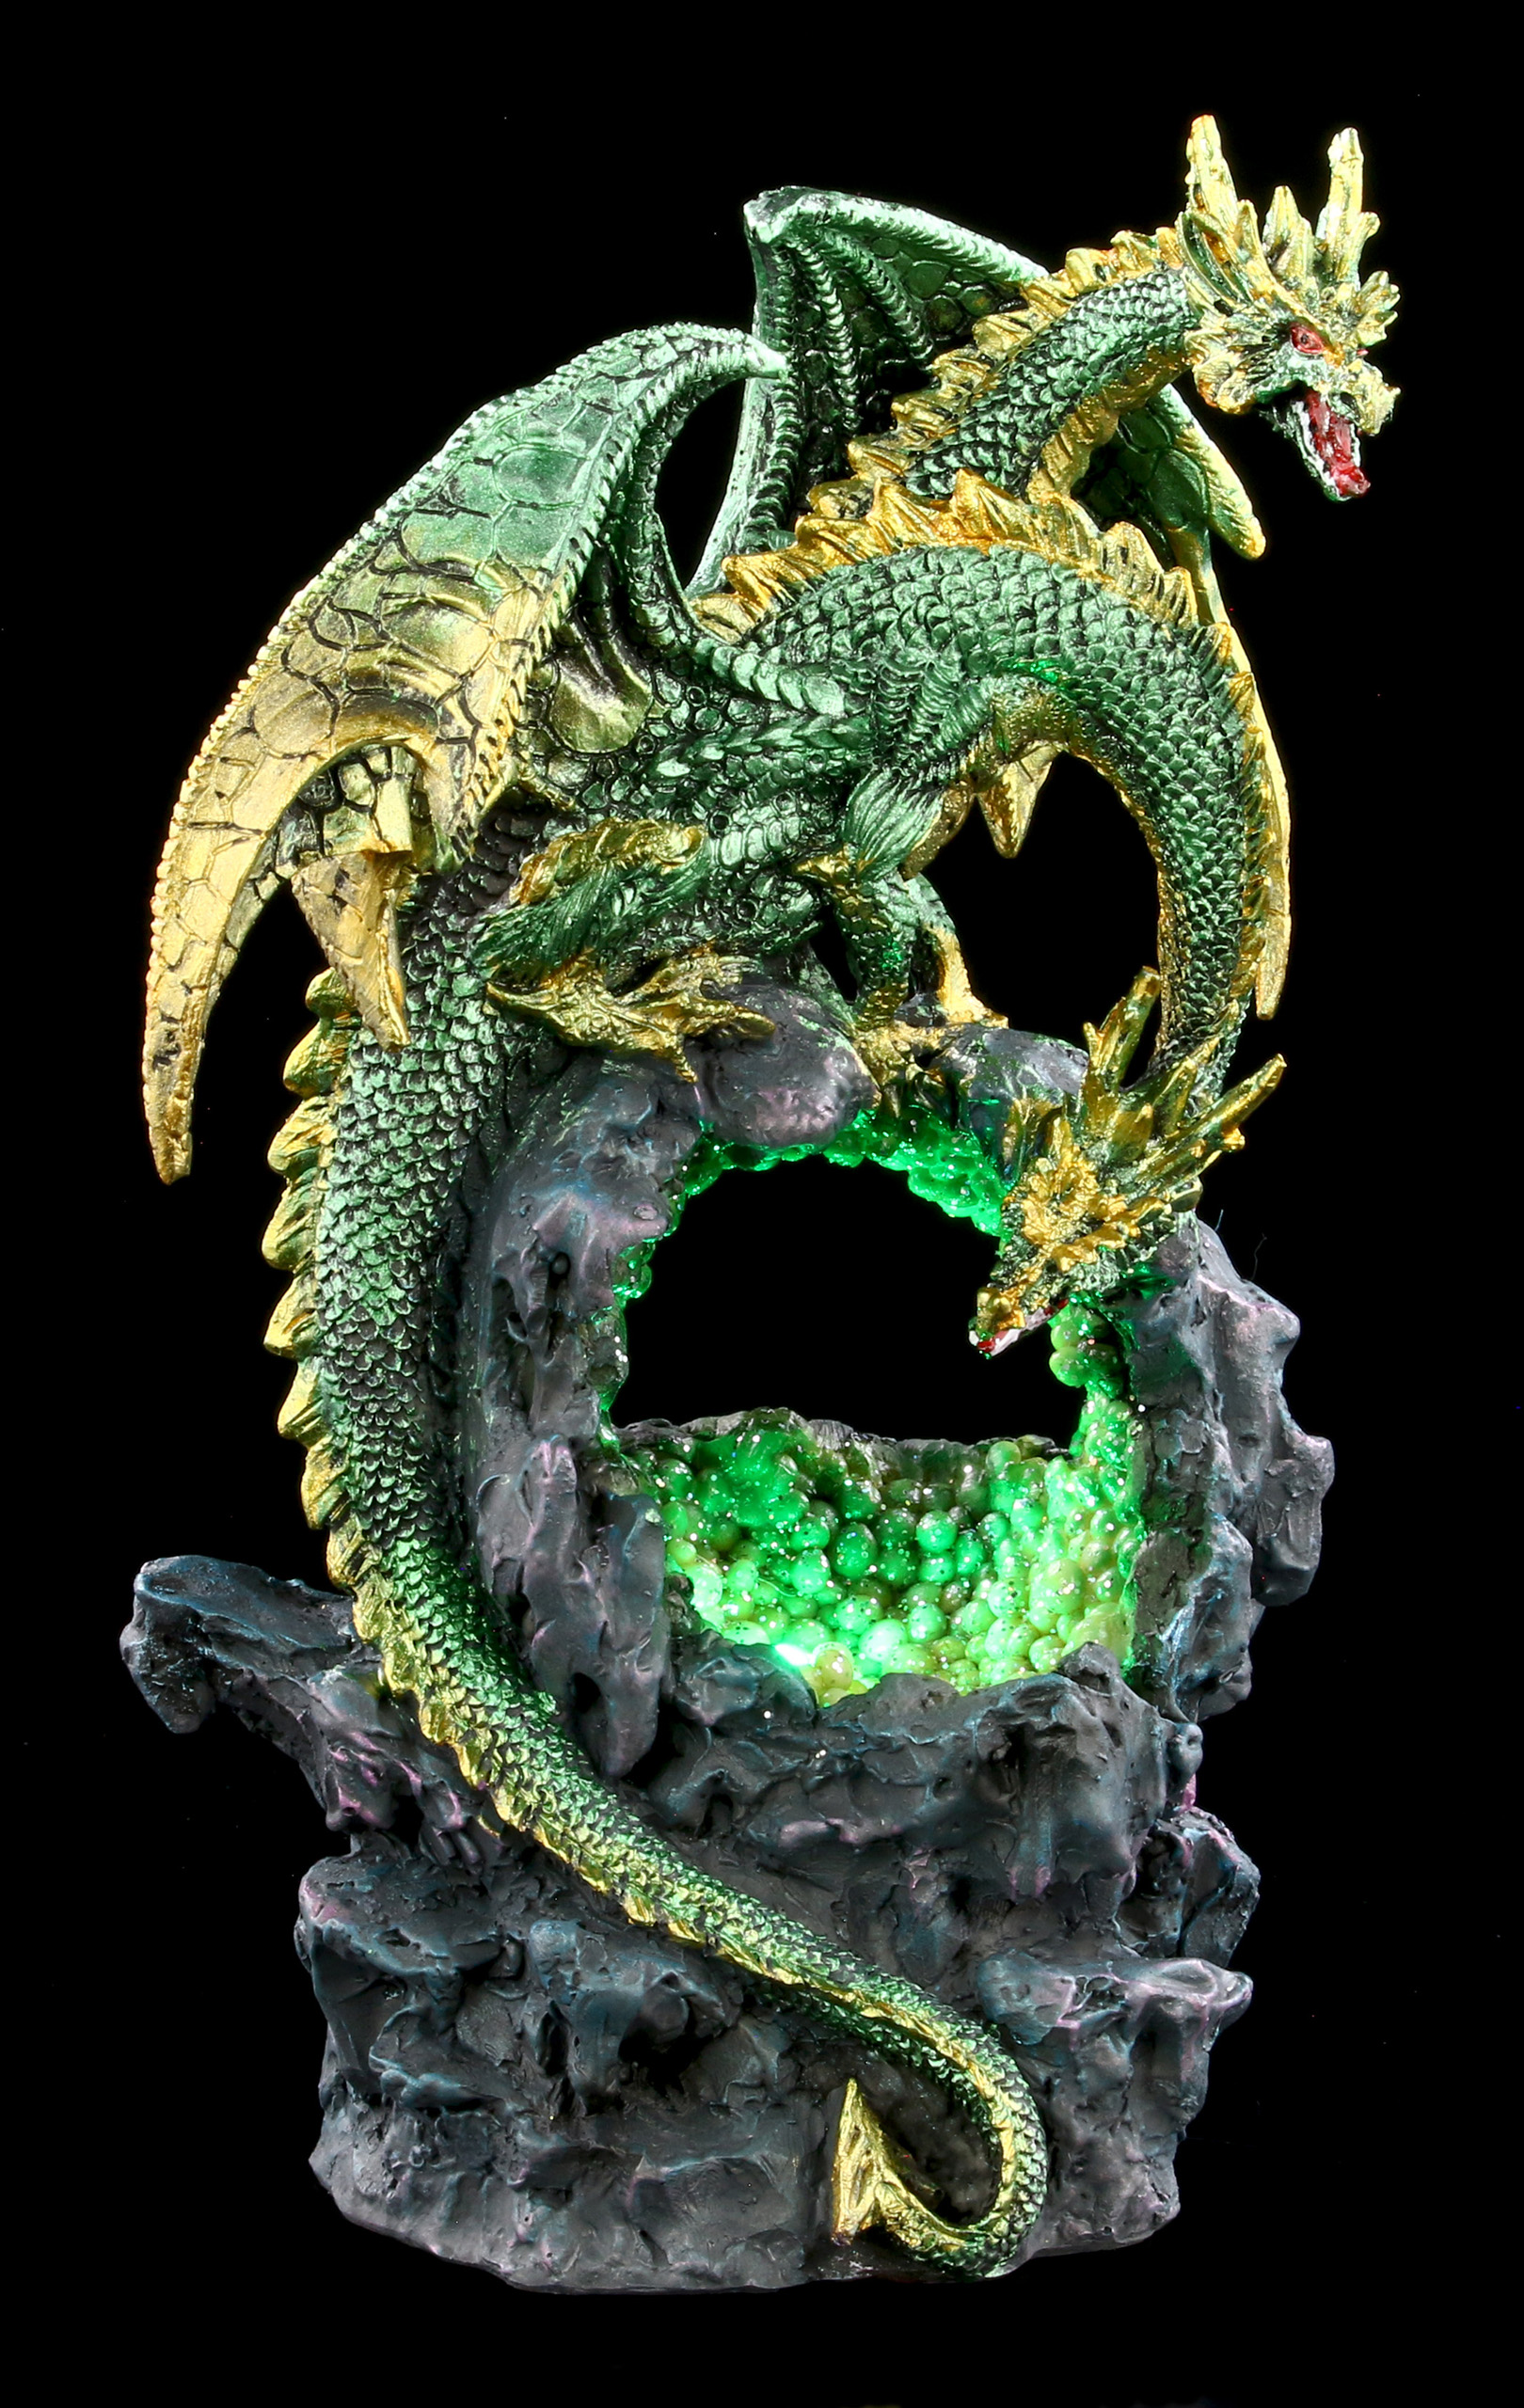 Two Headed Dragon Figurine Green with LED